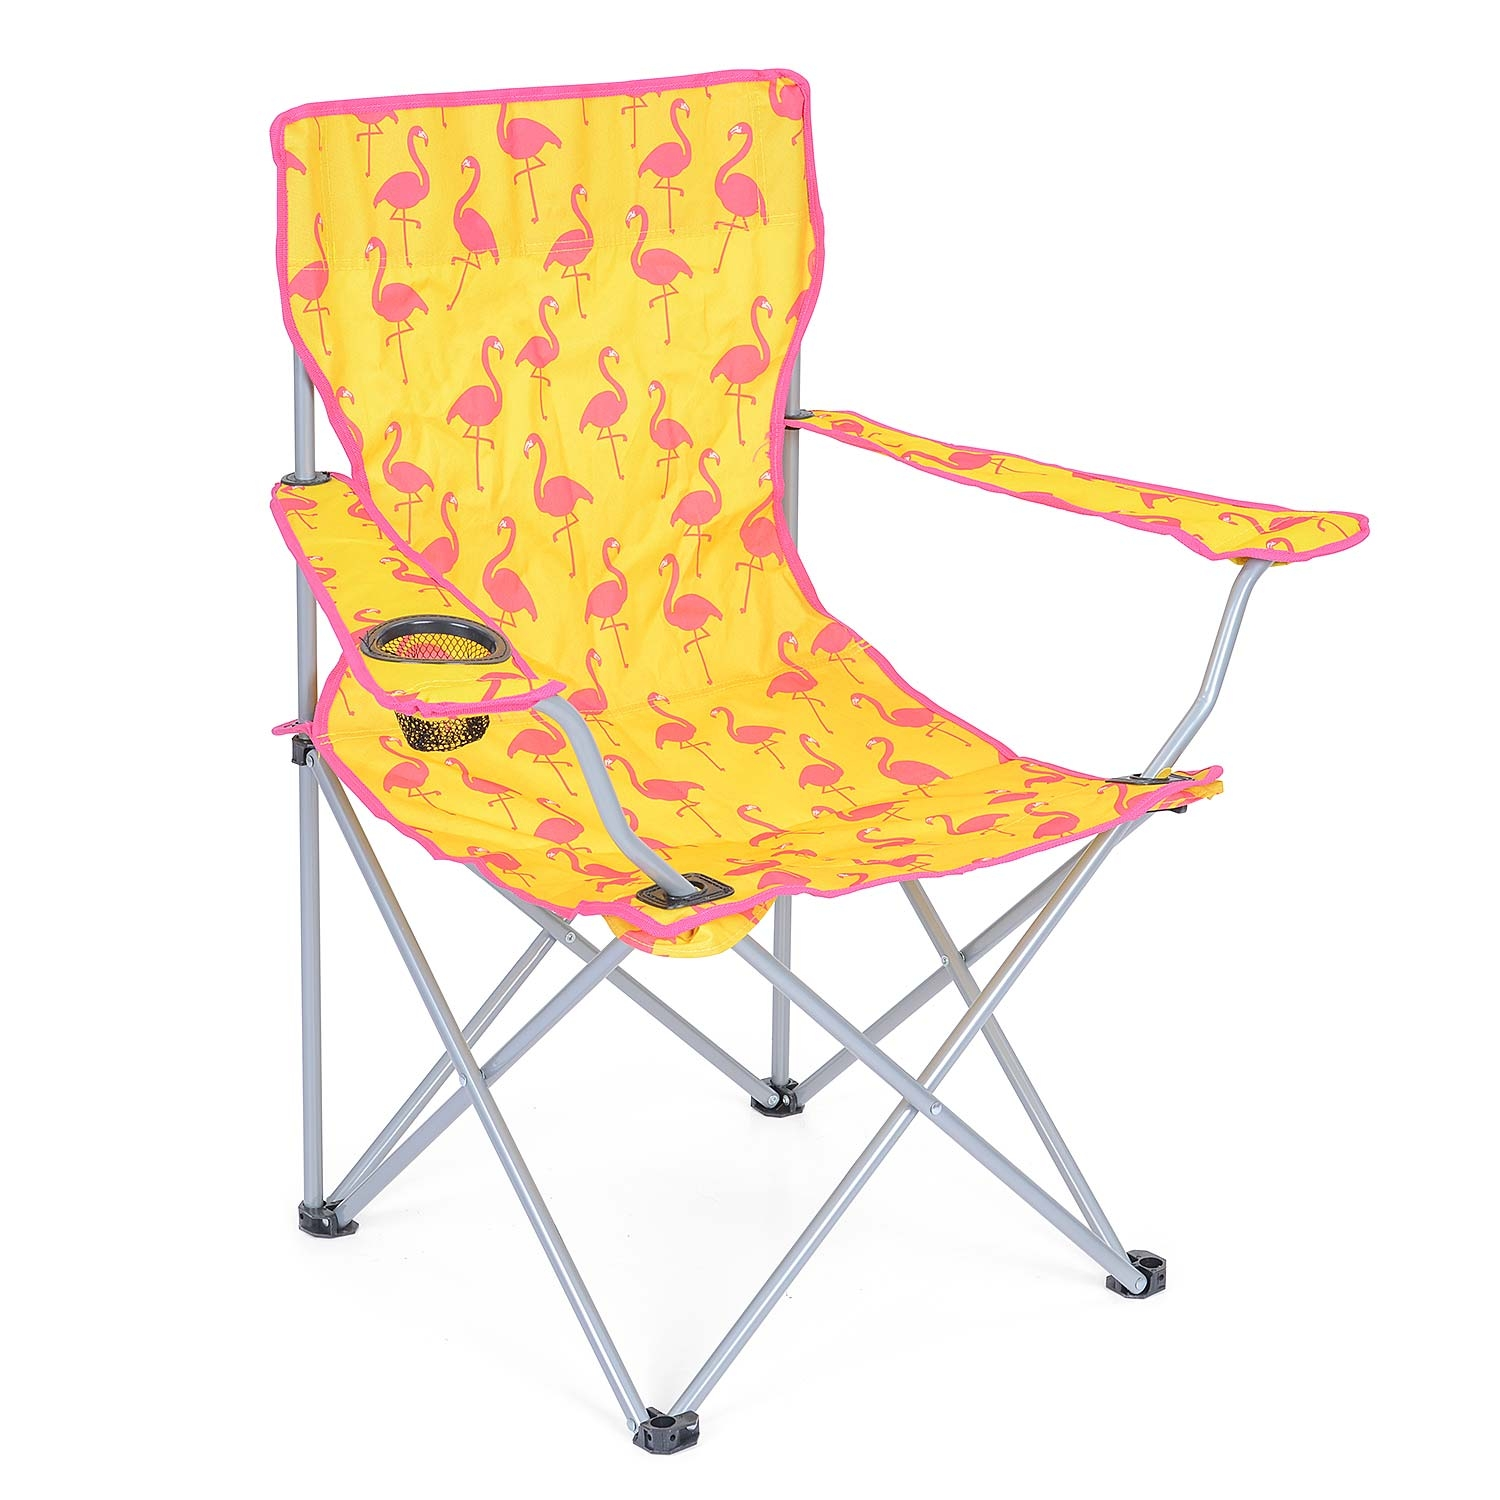 Flamingo Camping Chair - Yellow